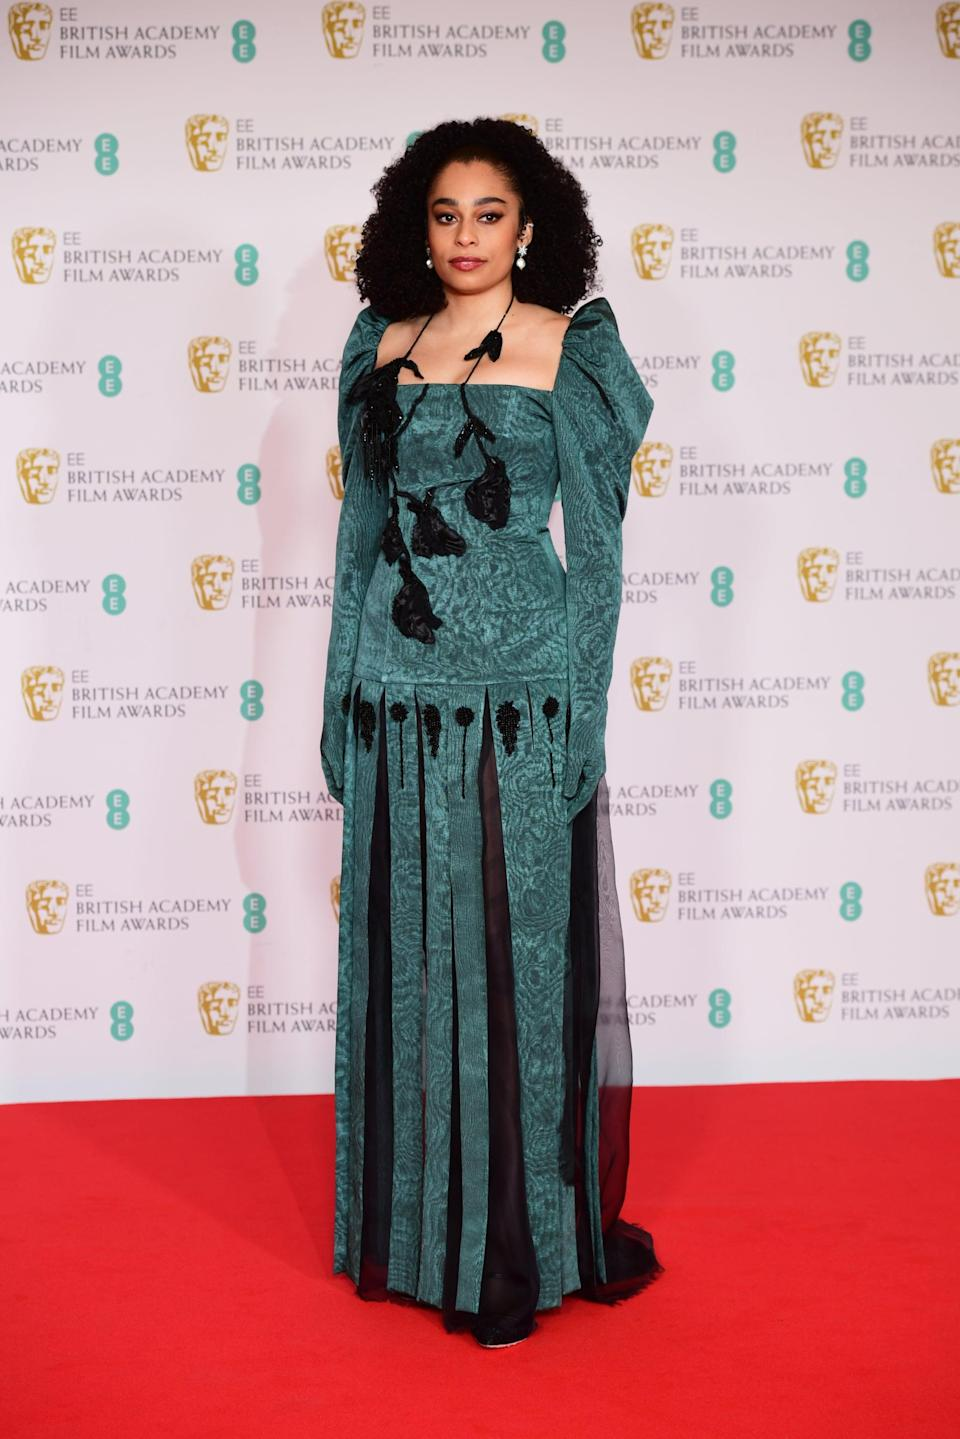 Celeste Epiphany Waite arrives for the EE BAFTA Film Awards at the Royal Albert Hall in London. Picture date: Sunday April 11, 2021. (Photo by Ian West/PA Images via Getty Images)